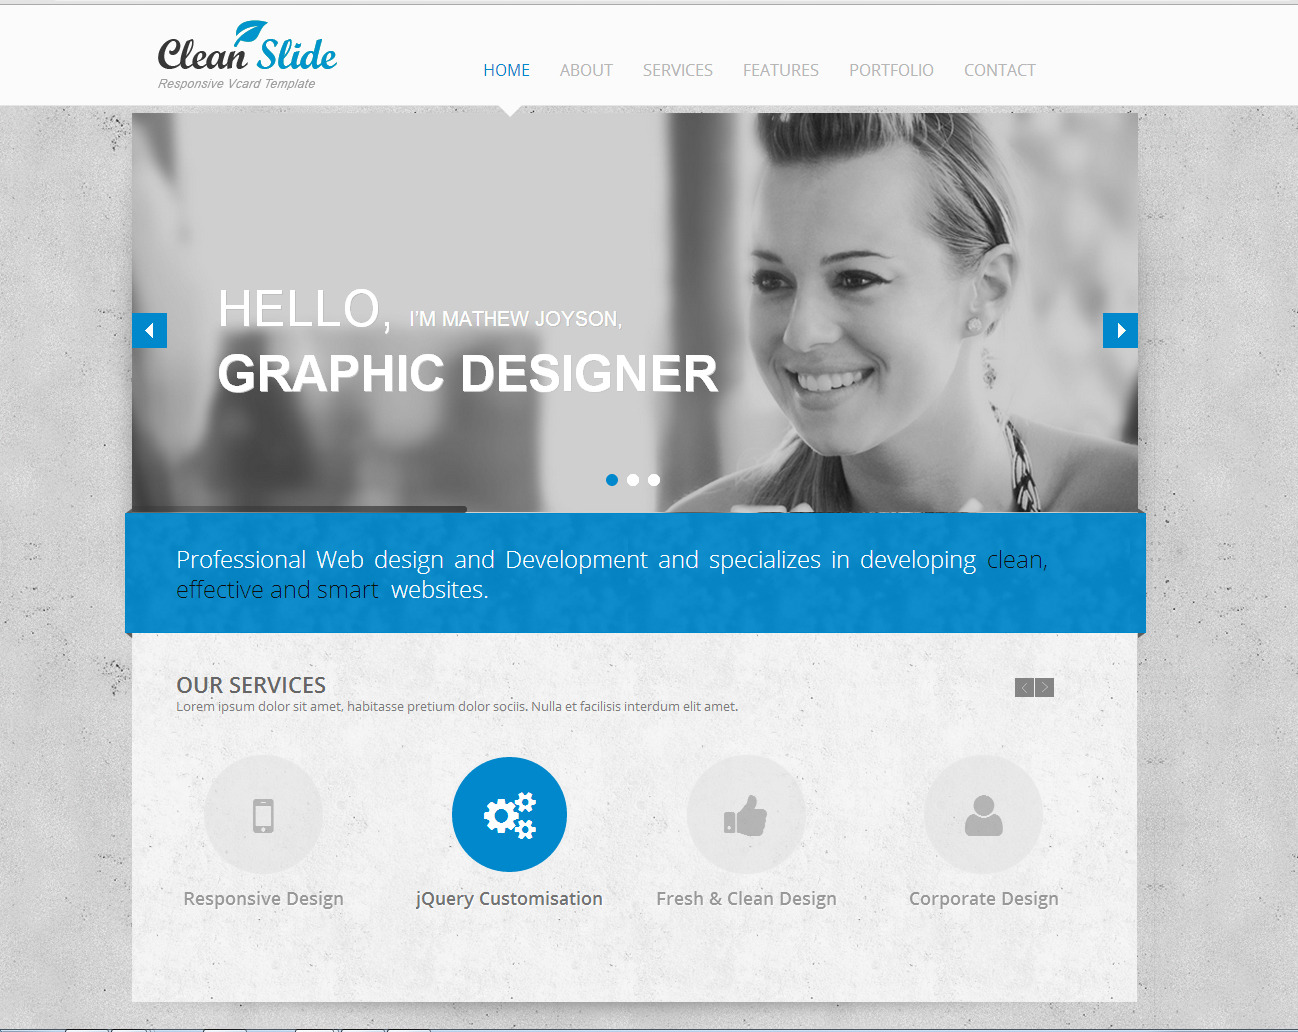 clean slide responsive html template vcard by accurathemes